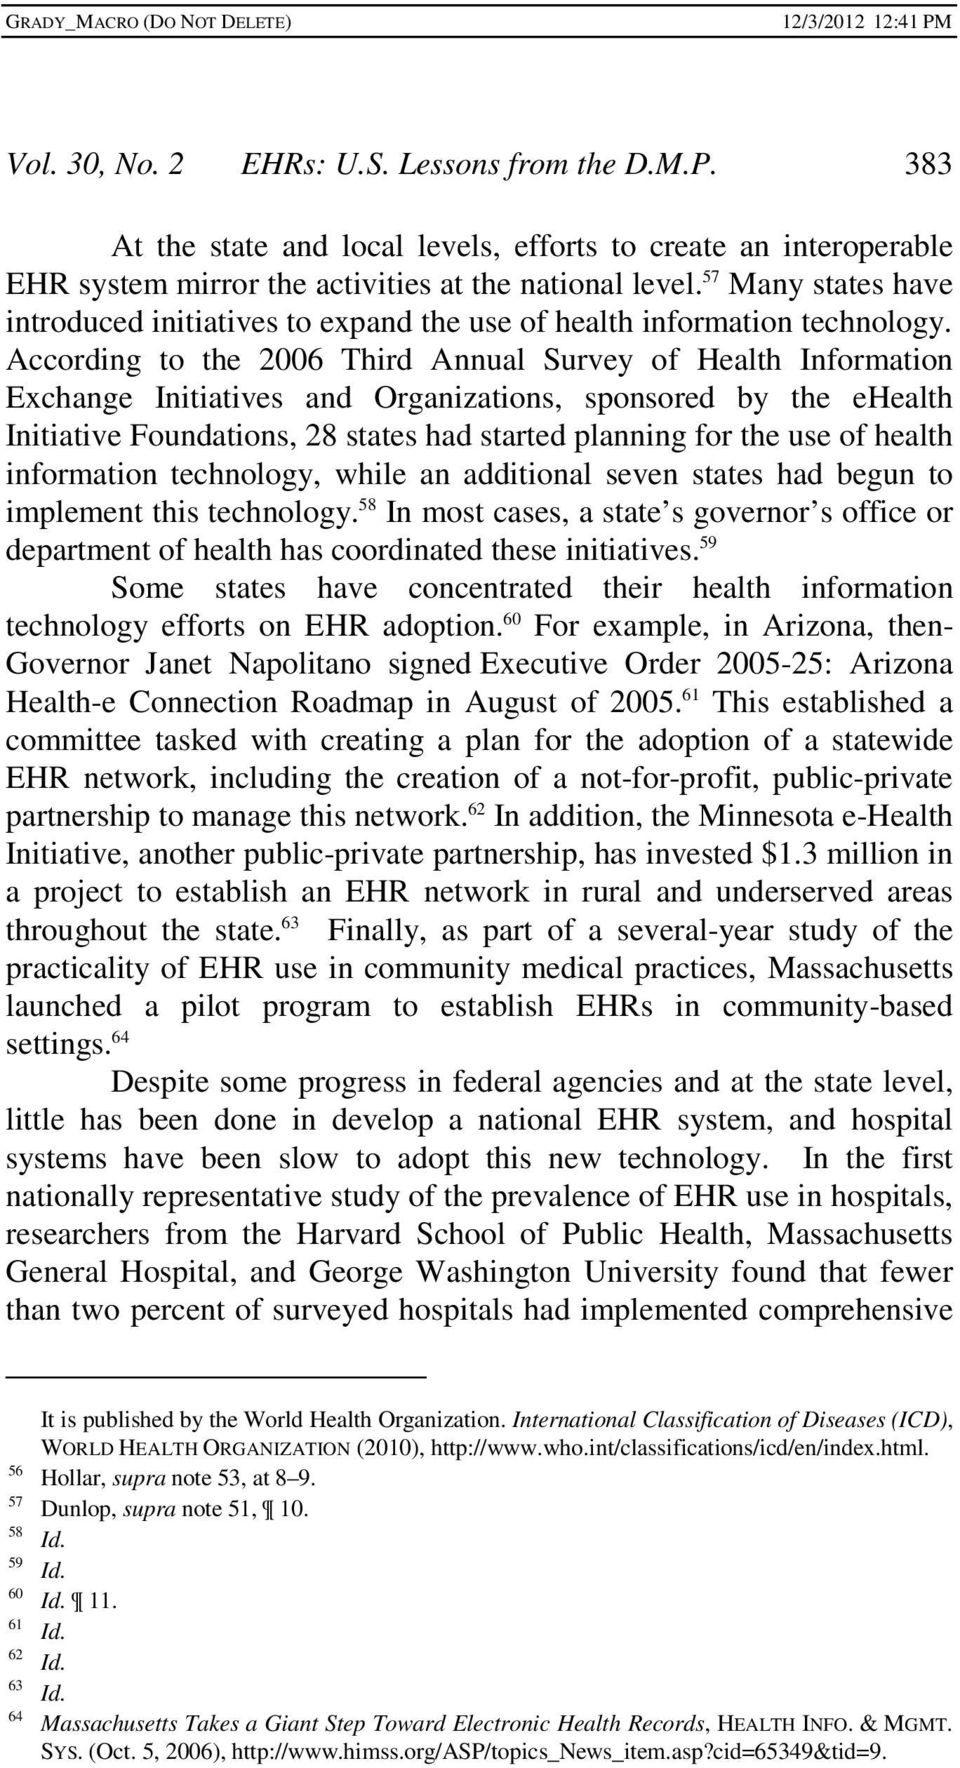 According to the 2006 Third Annual Survey of Health Information Exchange Initiatives and Organizations, sponsored by the ehealth Initiative Foundations, 28 states had started planning for the use of